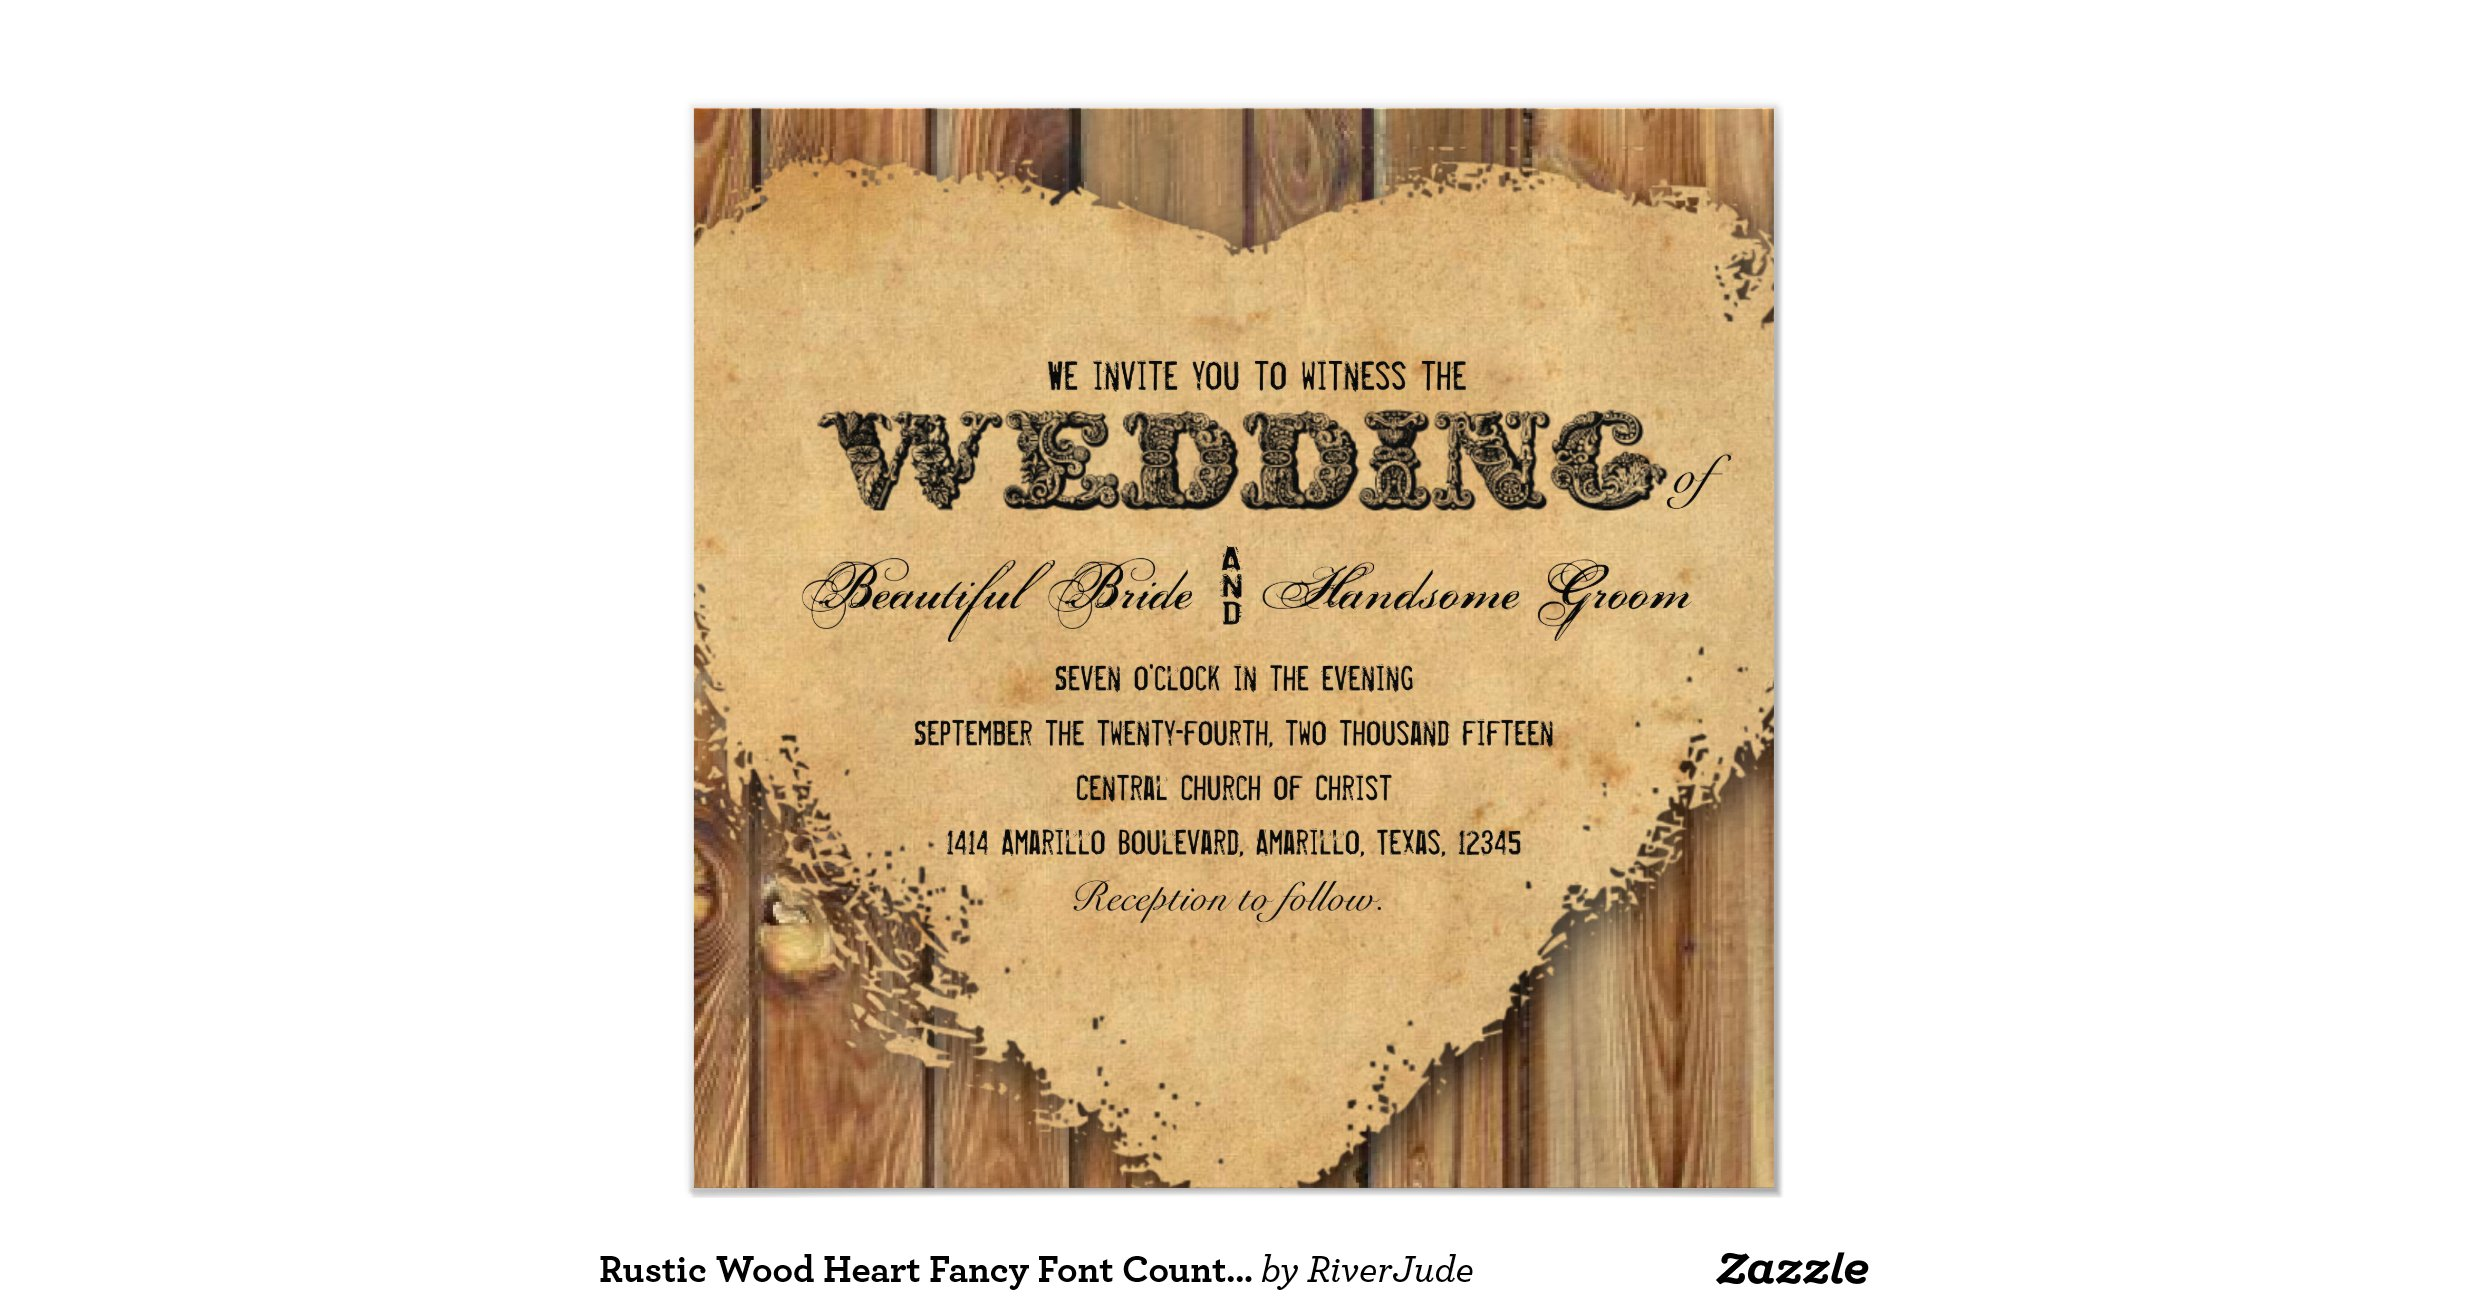 Rustic Wood Heart Fancy Font Country Wedding Invitation Ree2ef98d02314fdb97fc78f34777e6bd Zk91m